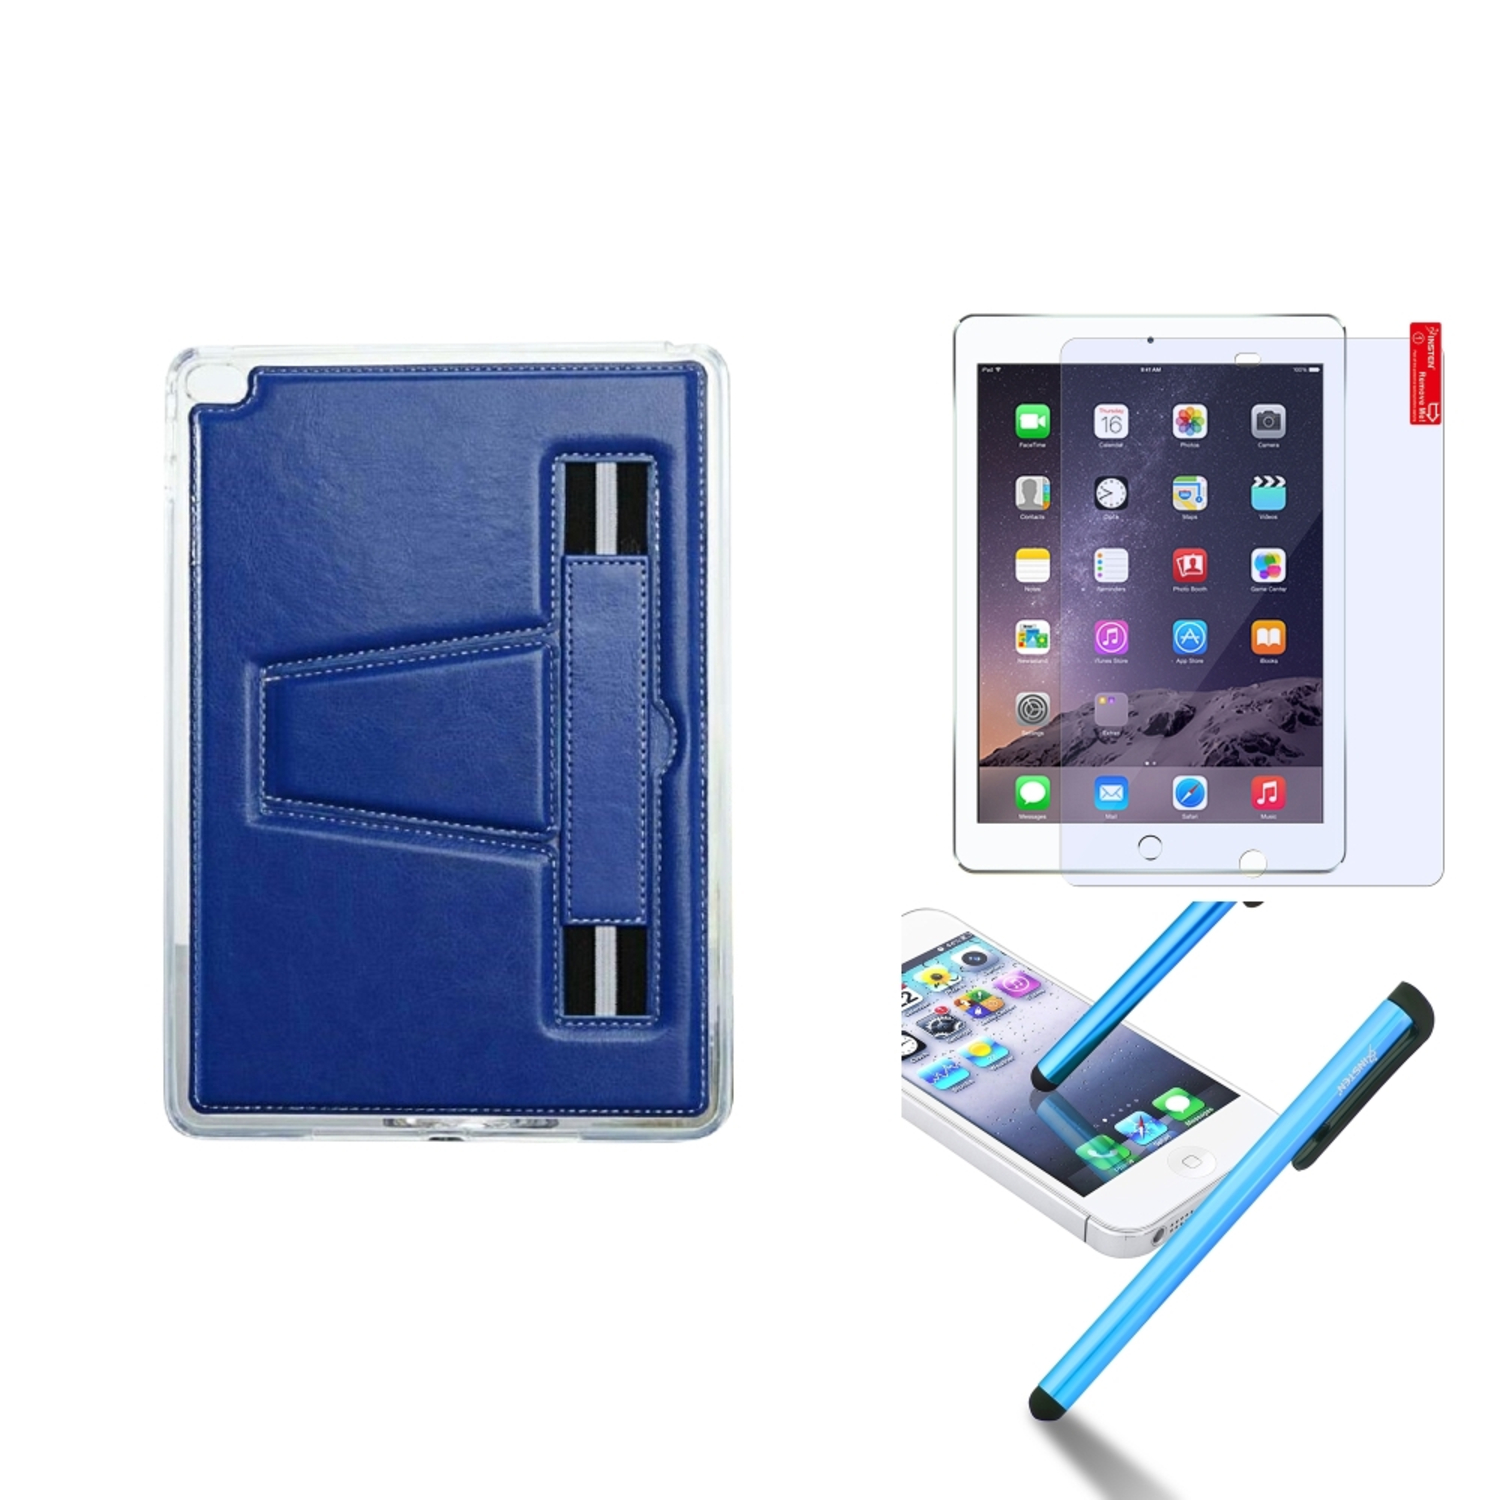 Insten For iPad Air 2 TPU Gel Rubber Soft Skin Case Cover w/ Stand+Protector+Pen Dark Blue